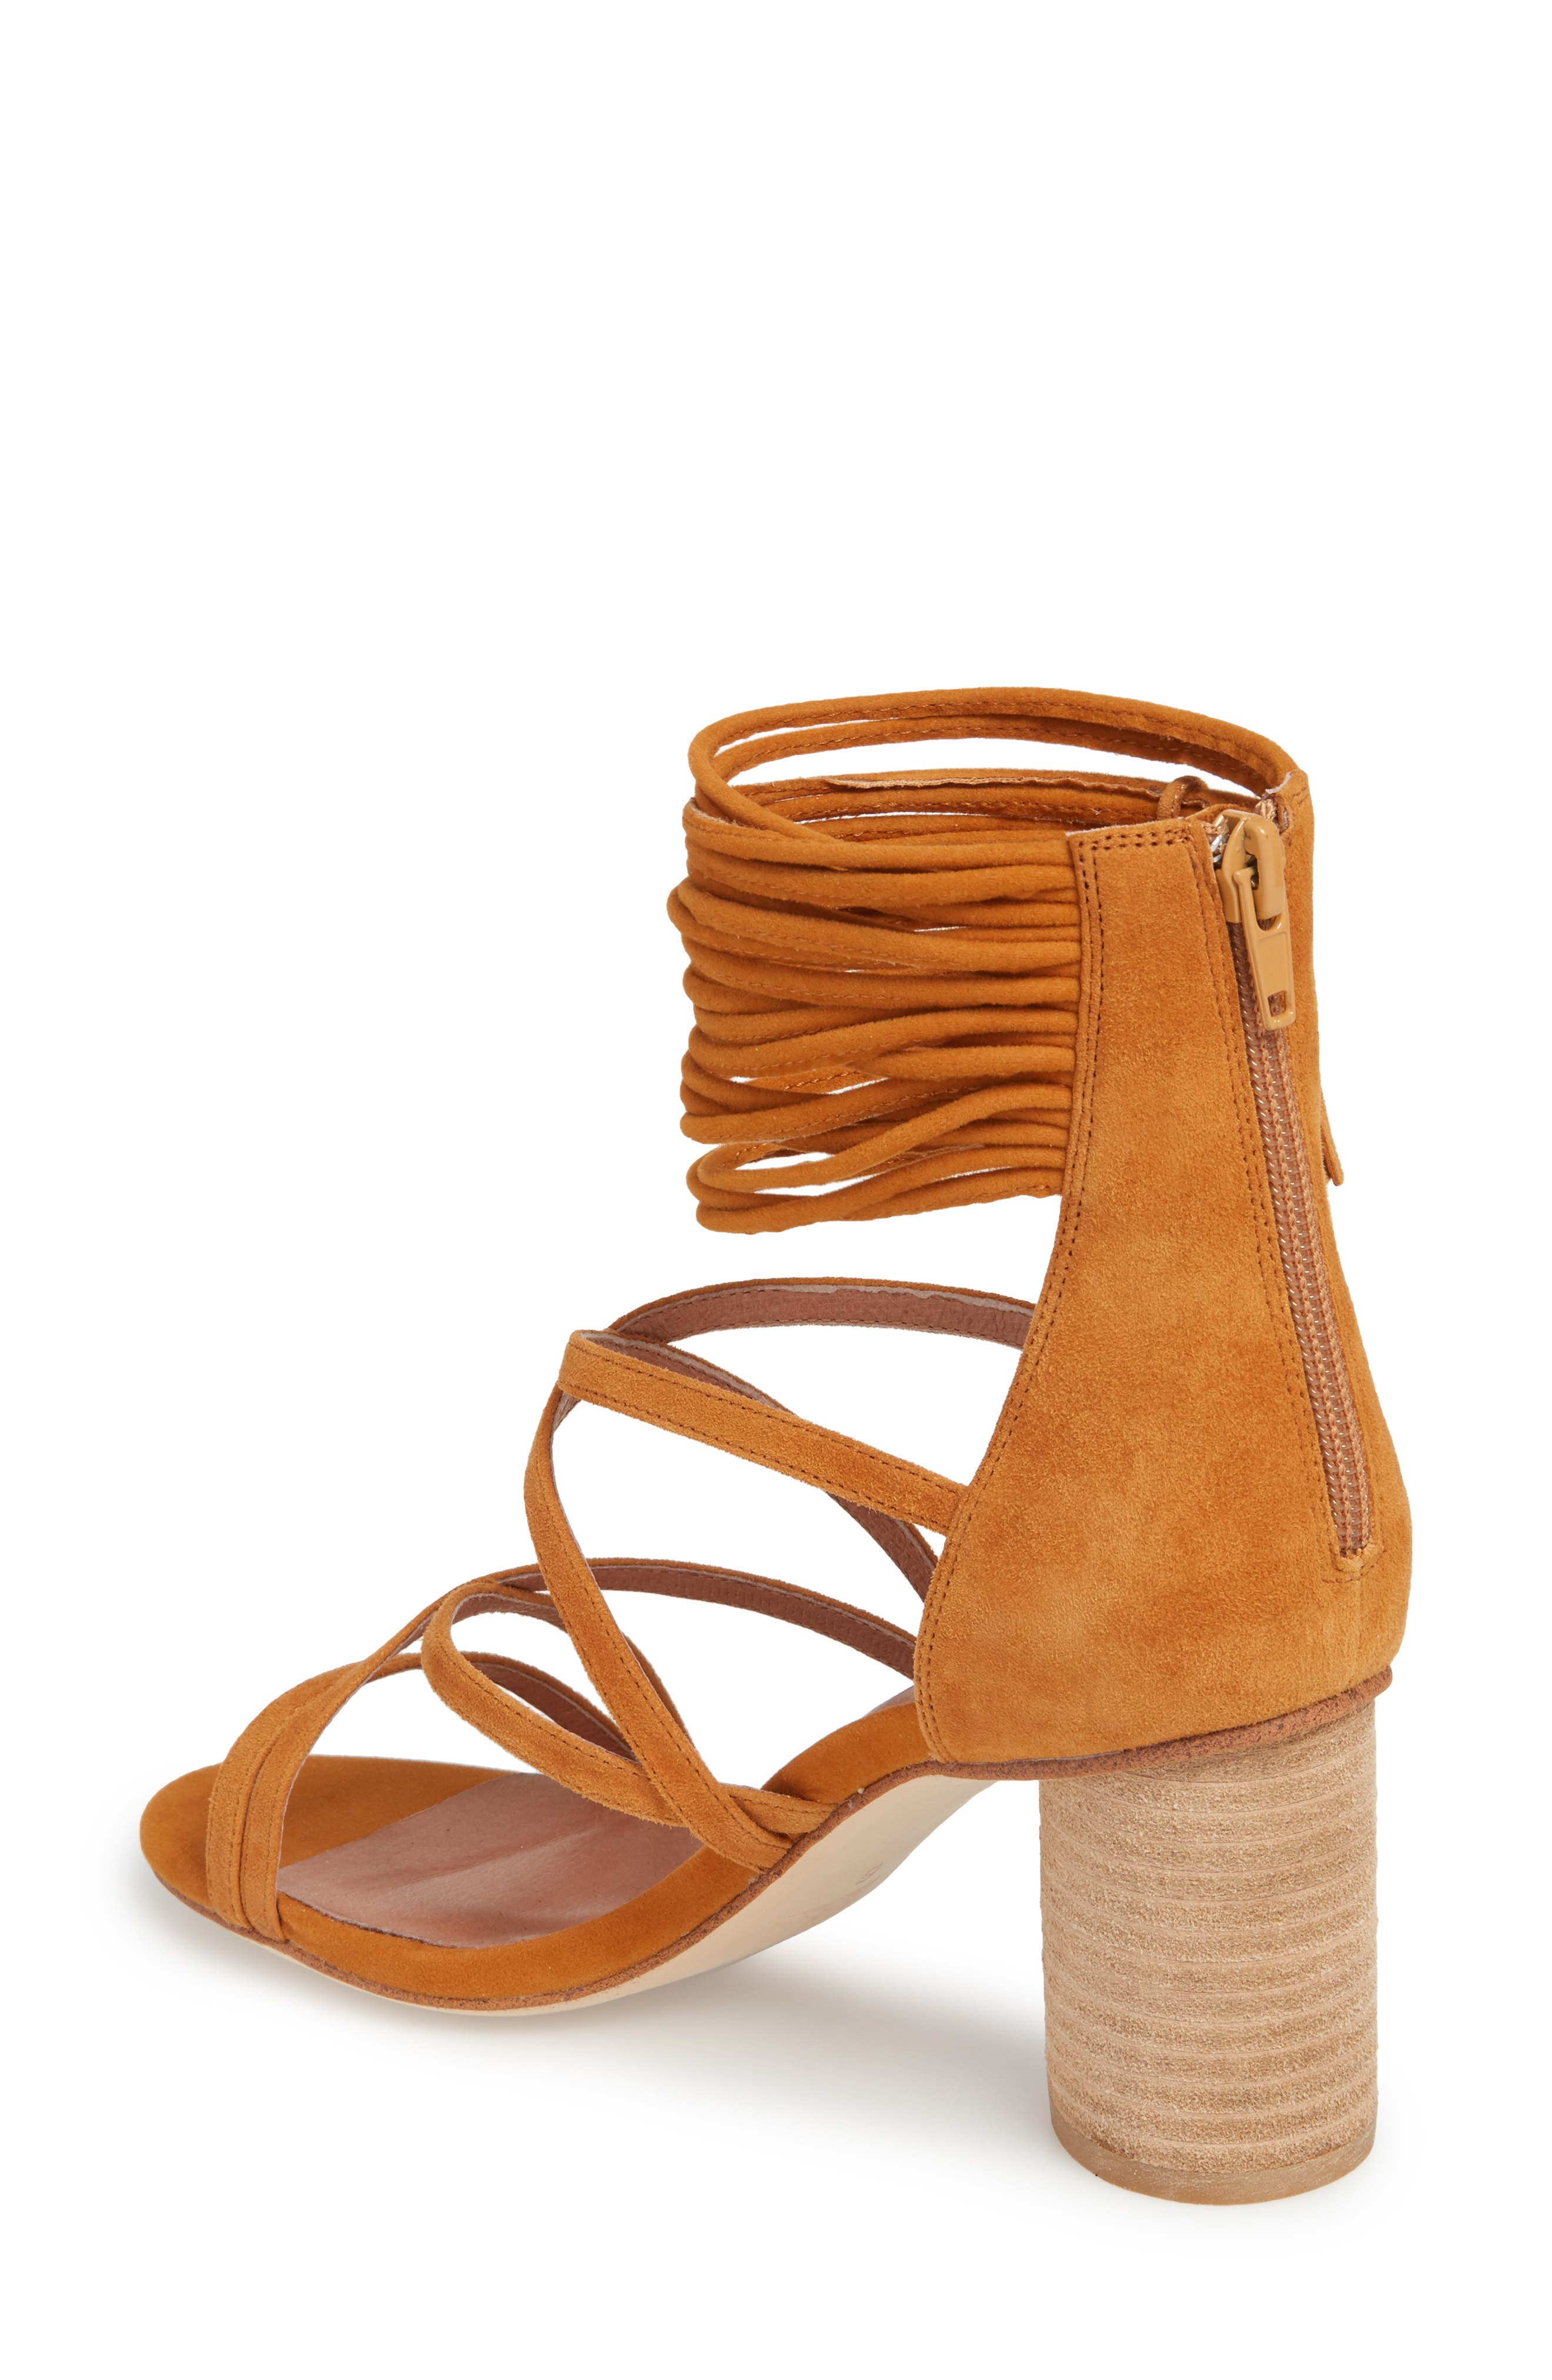 'Despina' Strappy Sandal,                             Alternate thumbnail 2, color,                             Mustard Suede